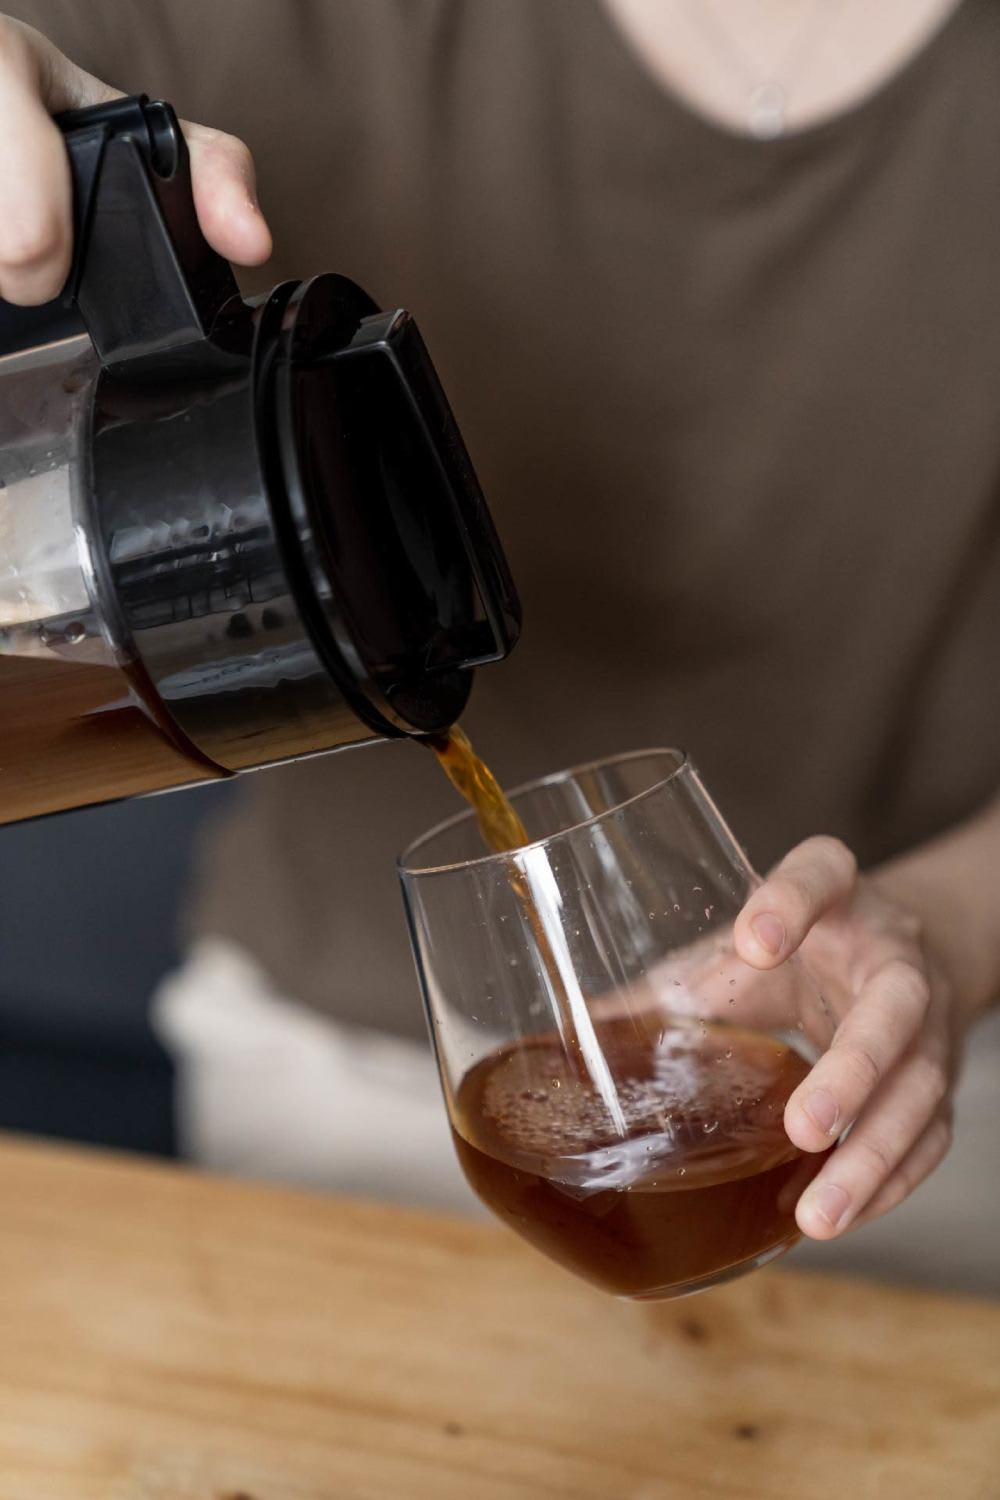 NOC cold-brew coffee